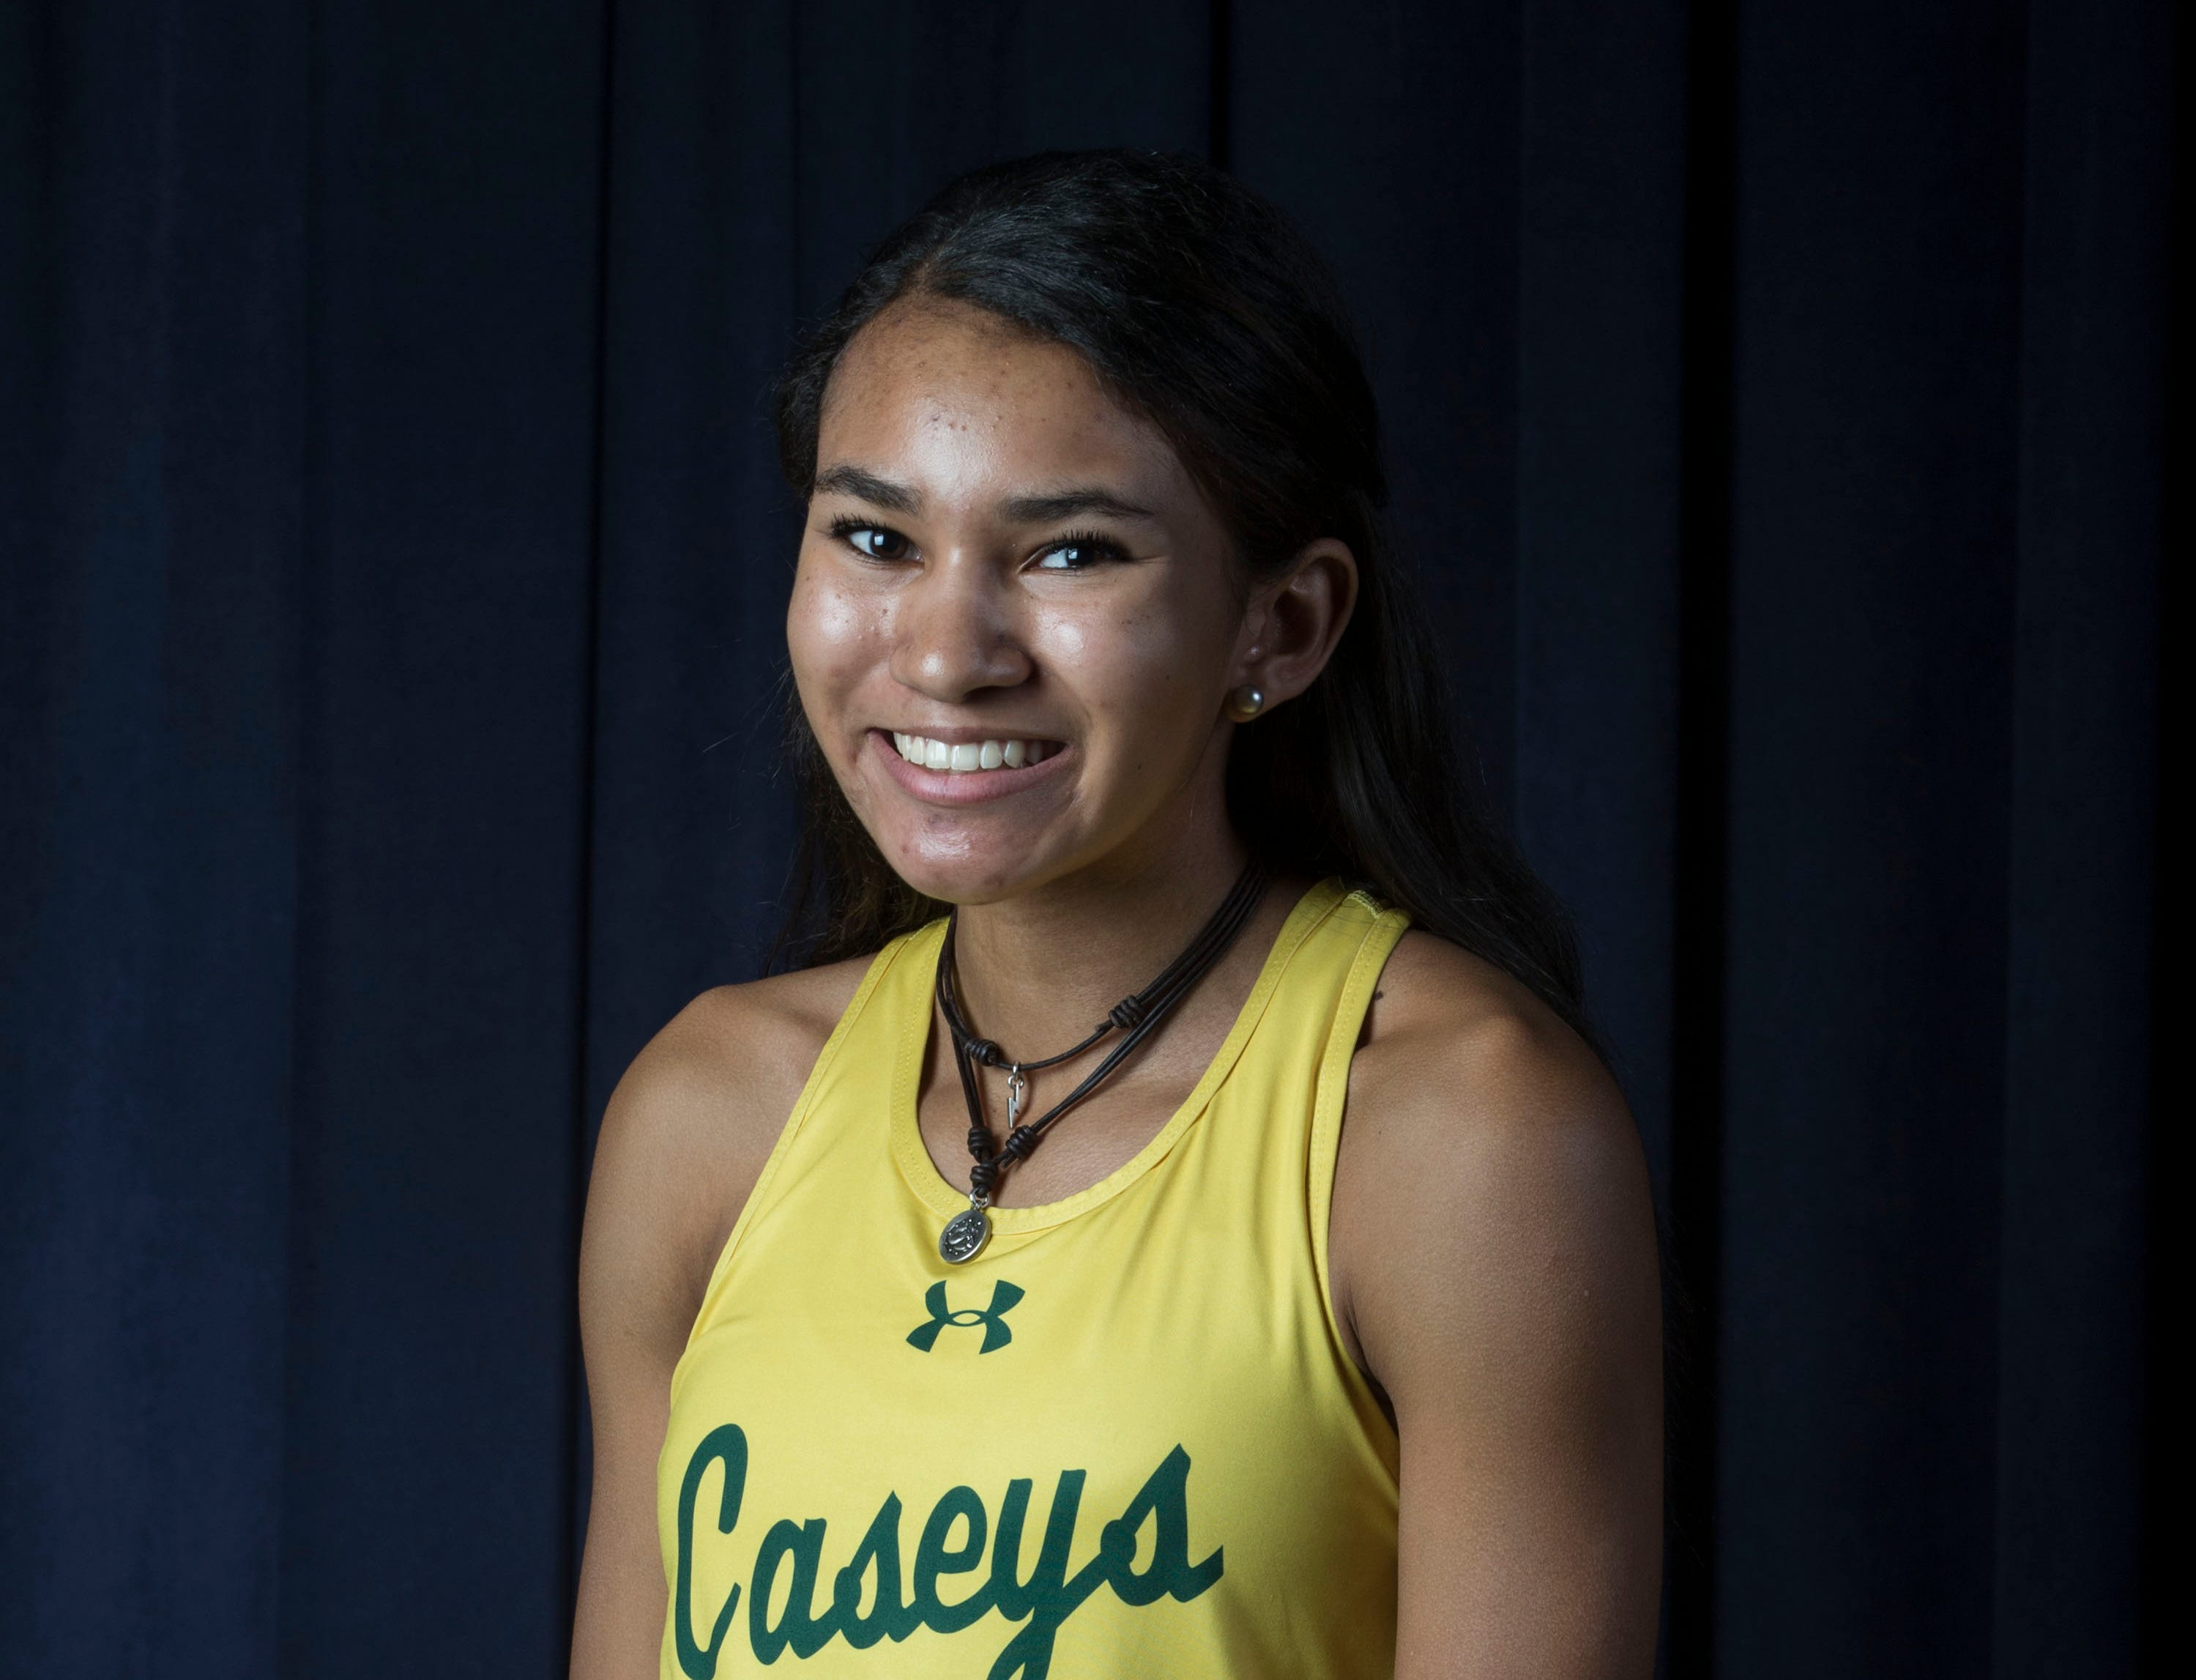 The 2019 All-Shore Girls Track- Tess Darnell of Red Bank Catholic